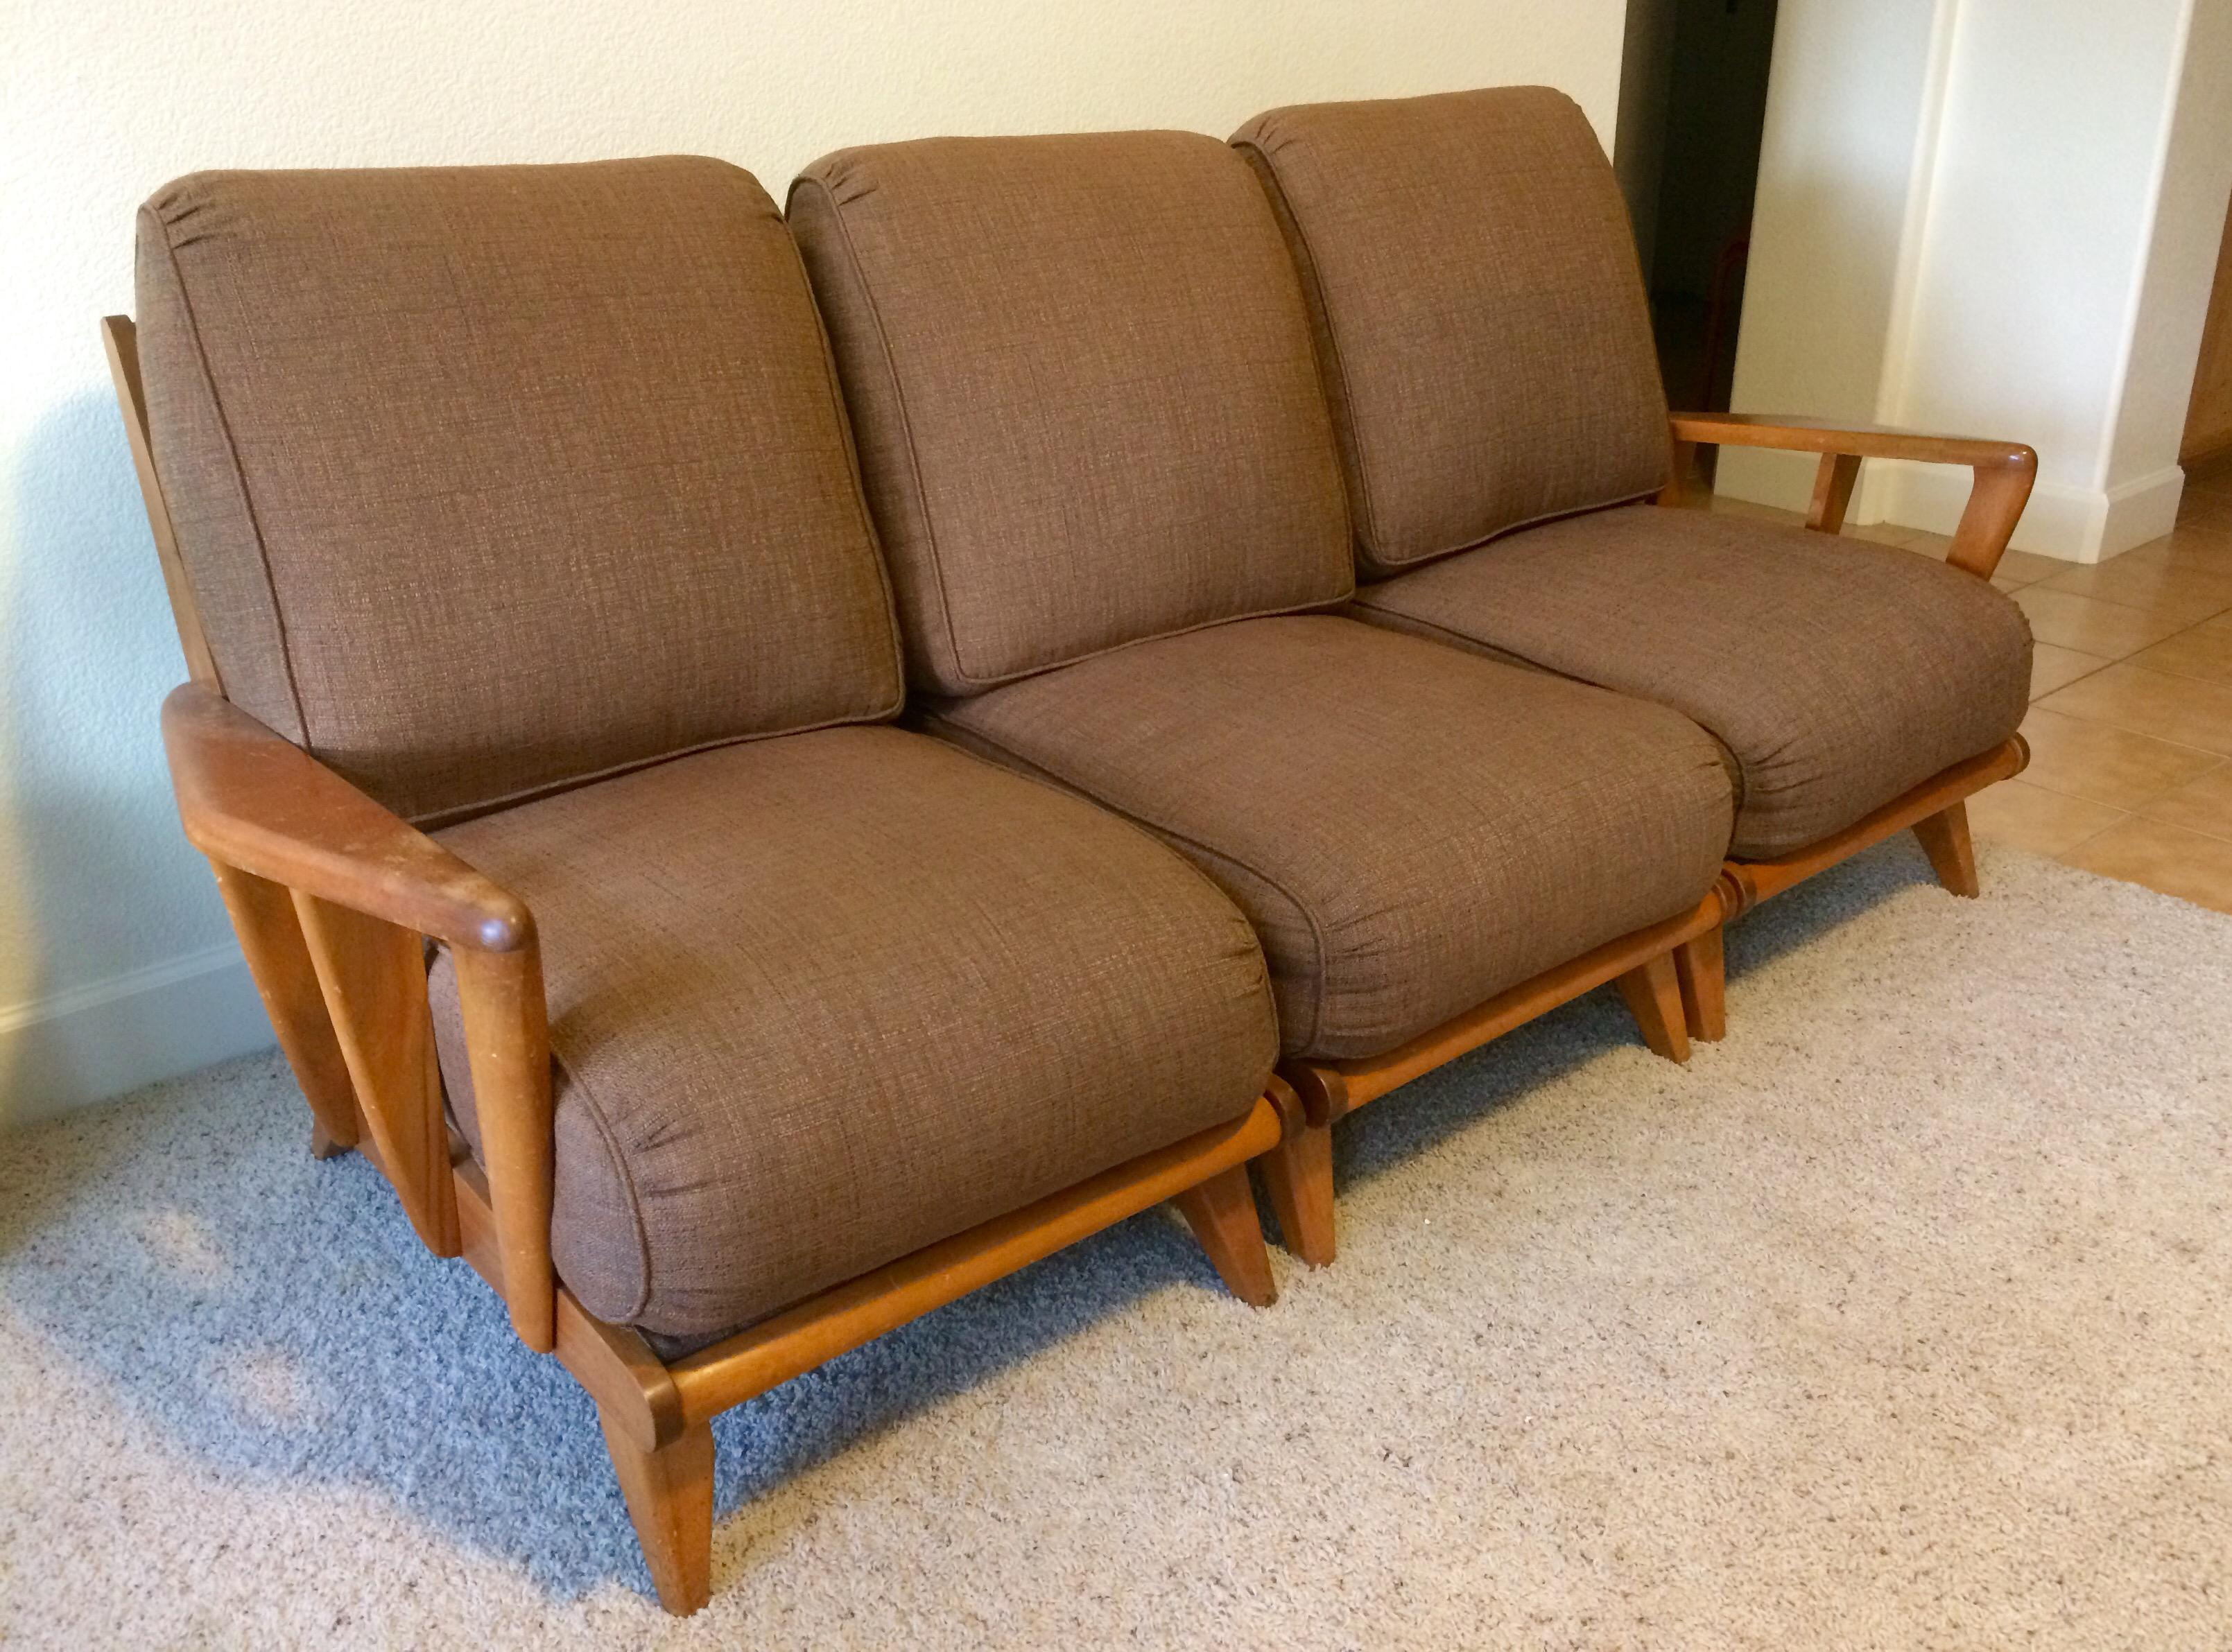 Vintage Heywood Wakefield Mid Century Sectional Sofa Chairish